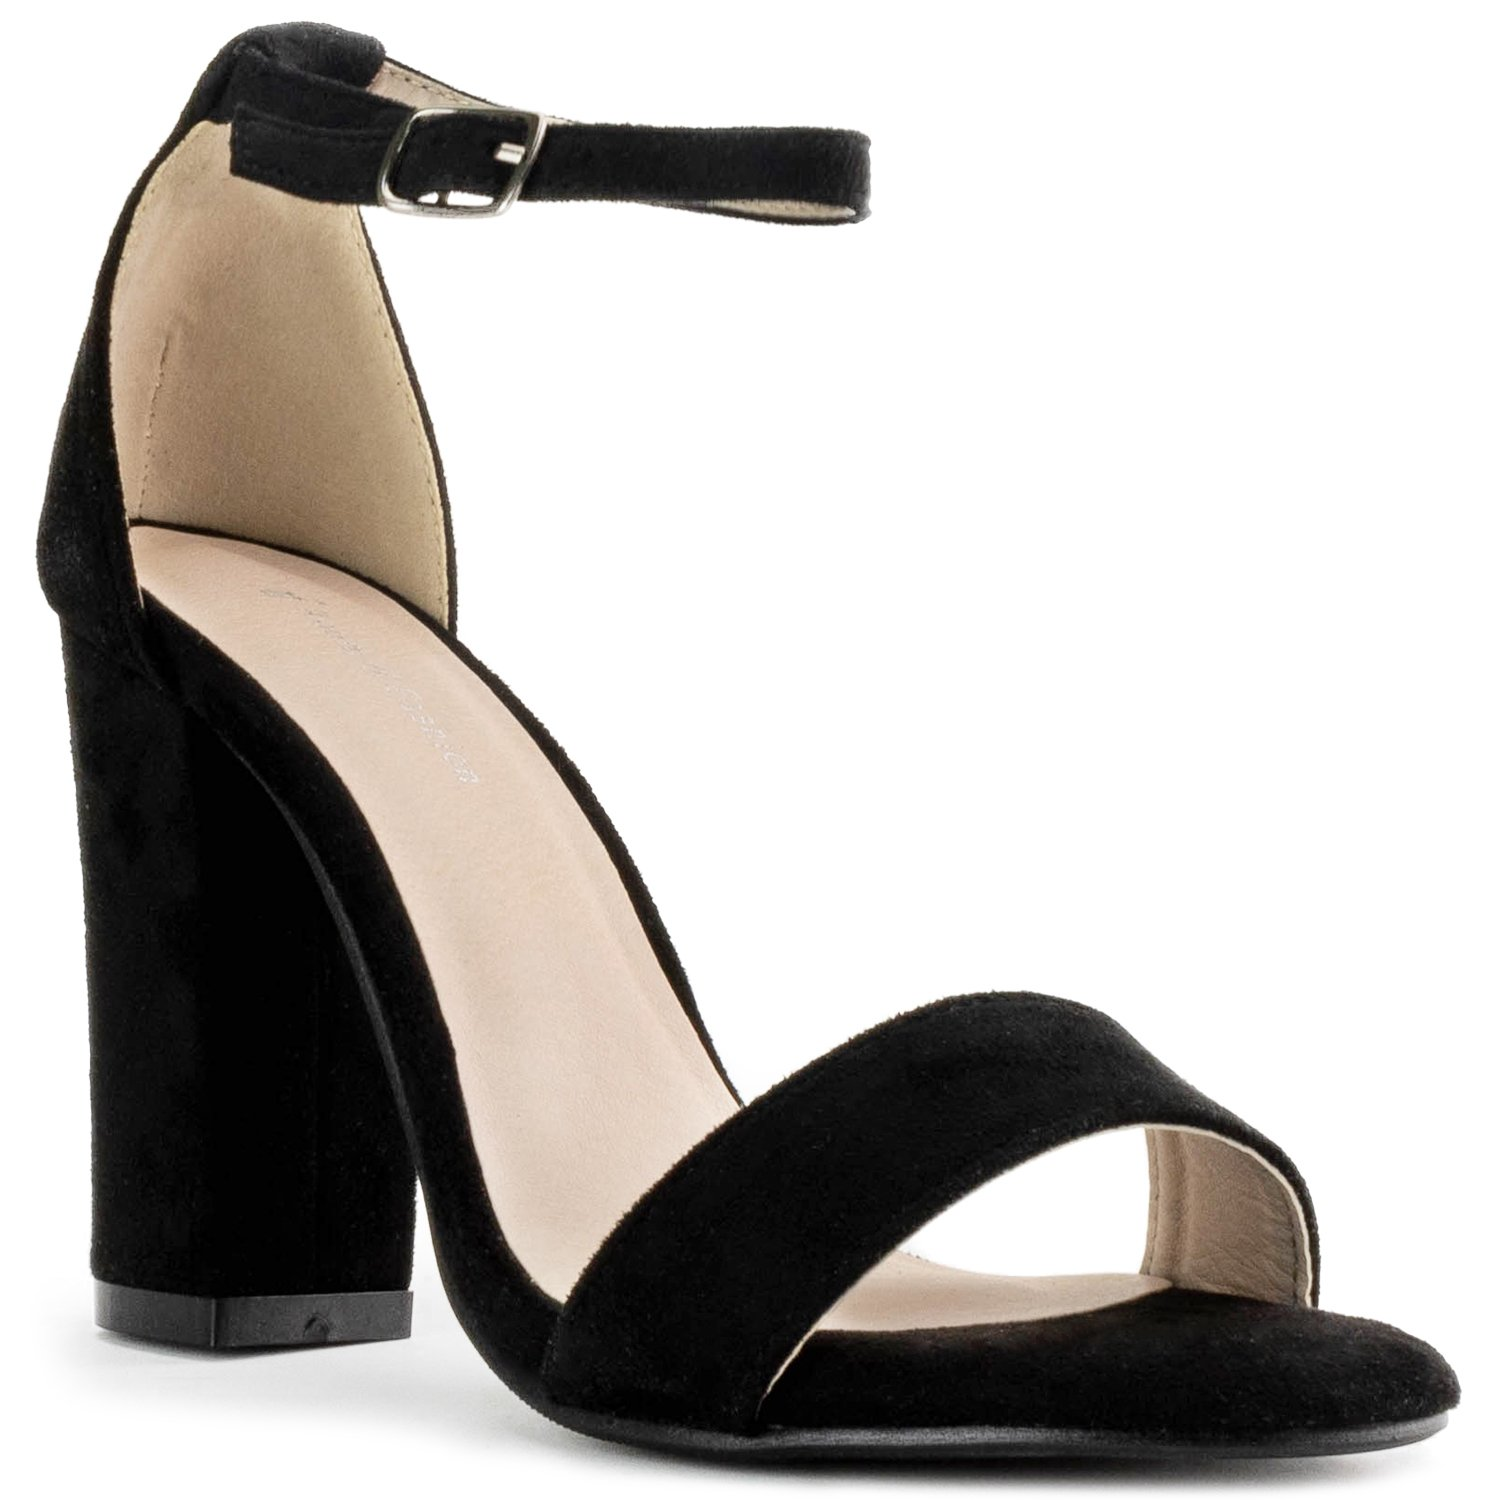 RF ROOM OF FASHION Open Toe Covered Chunky Block Heel Sandals - Dressy Vegan Single Sole Ankle Strap Sandals Black (8.5)